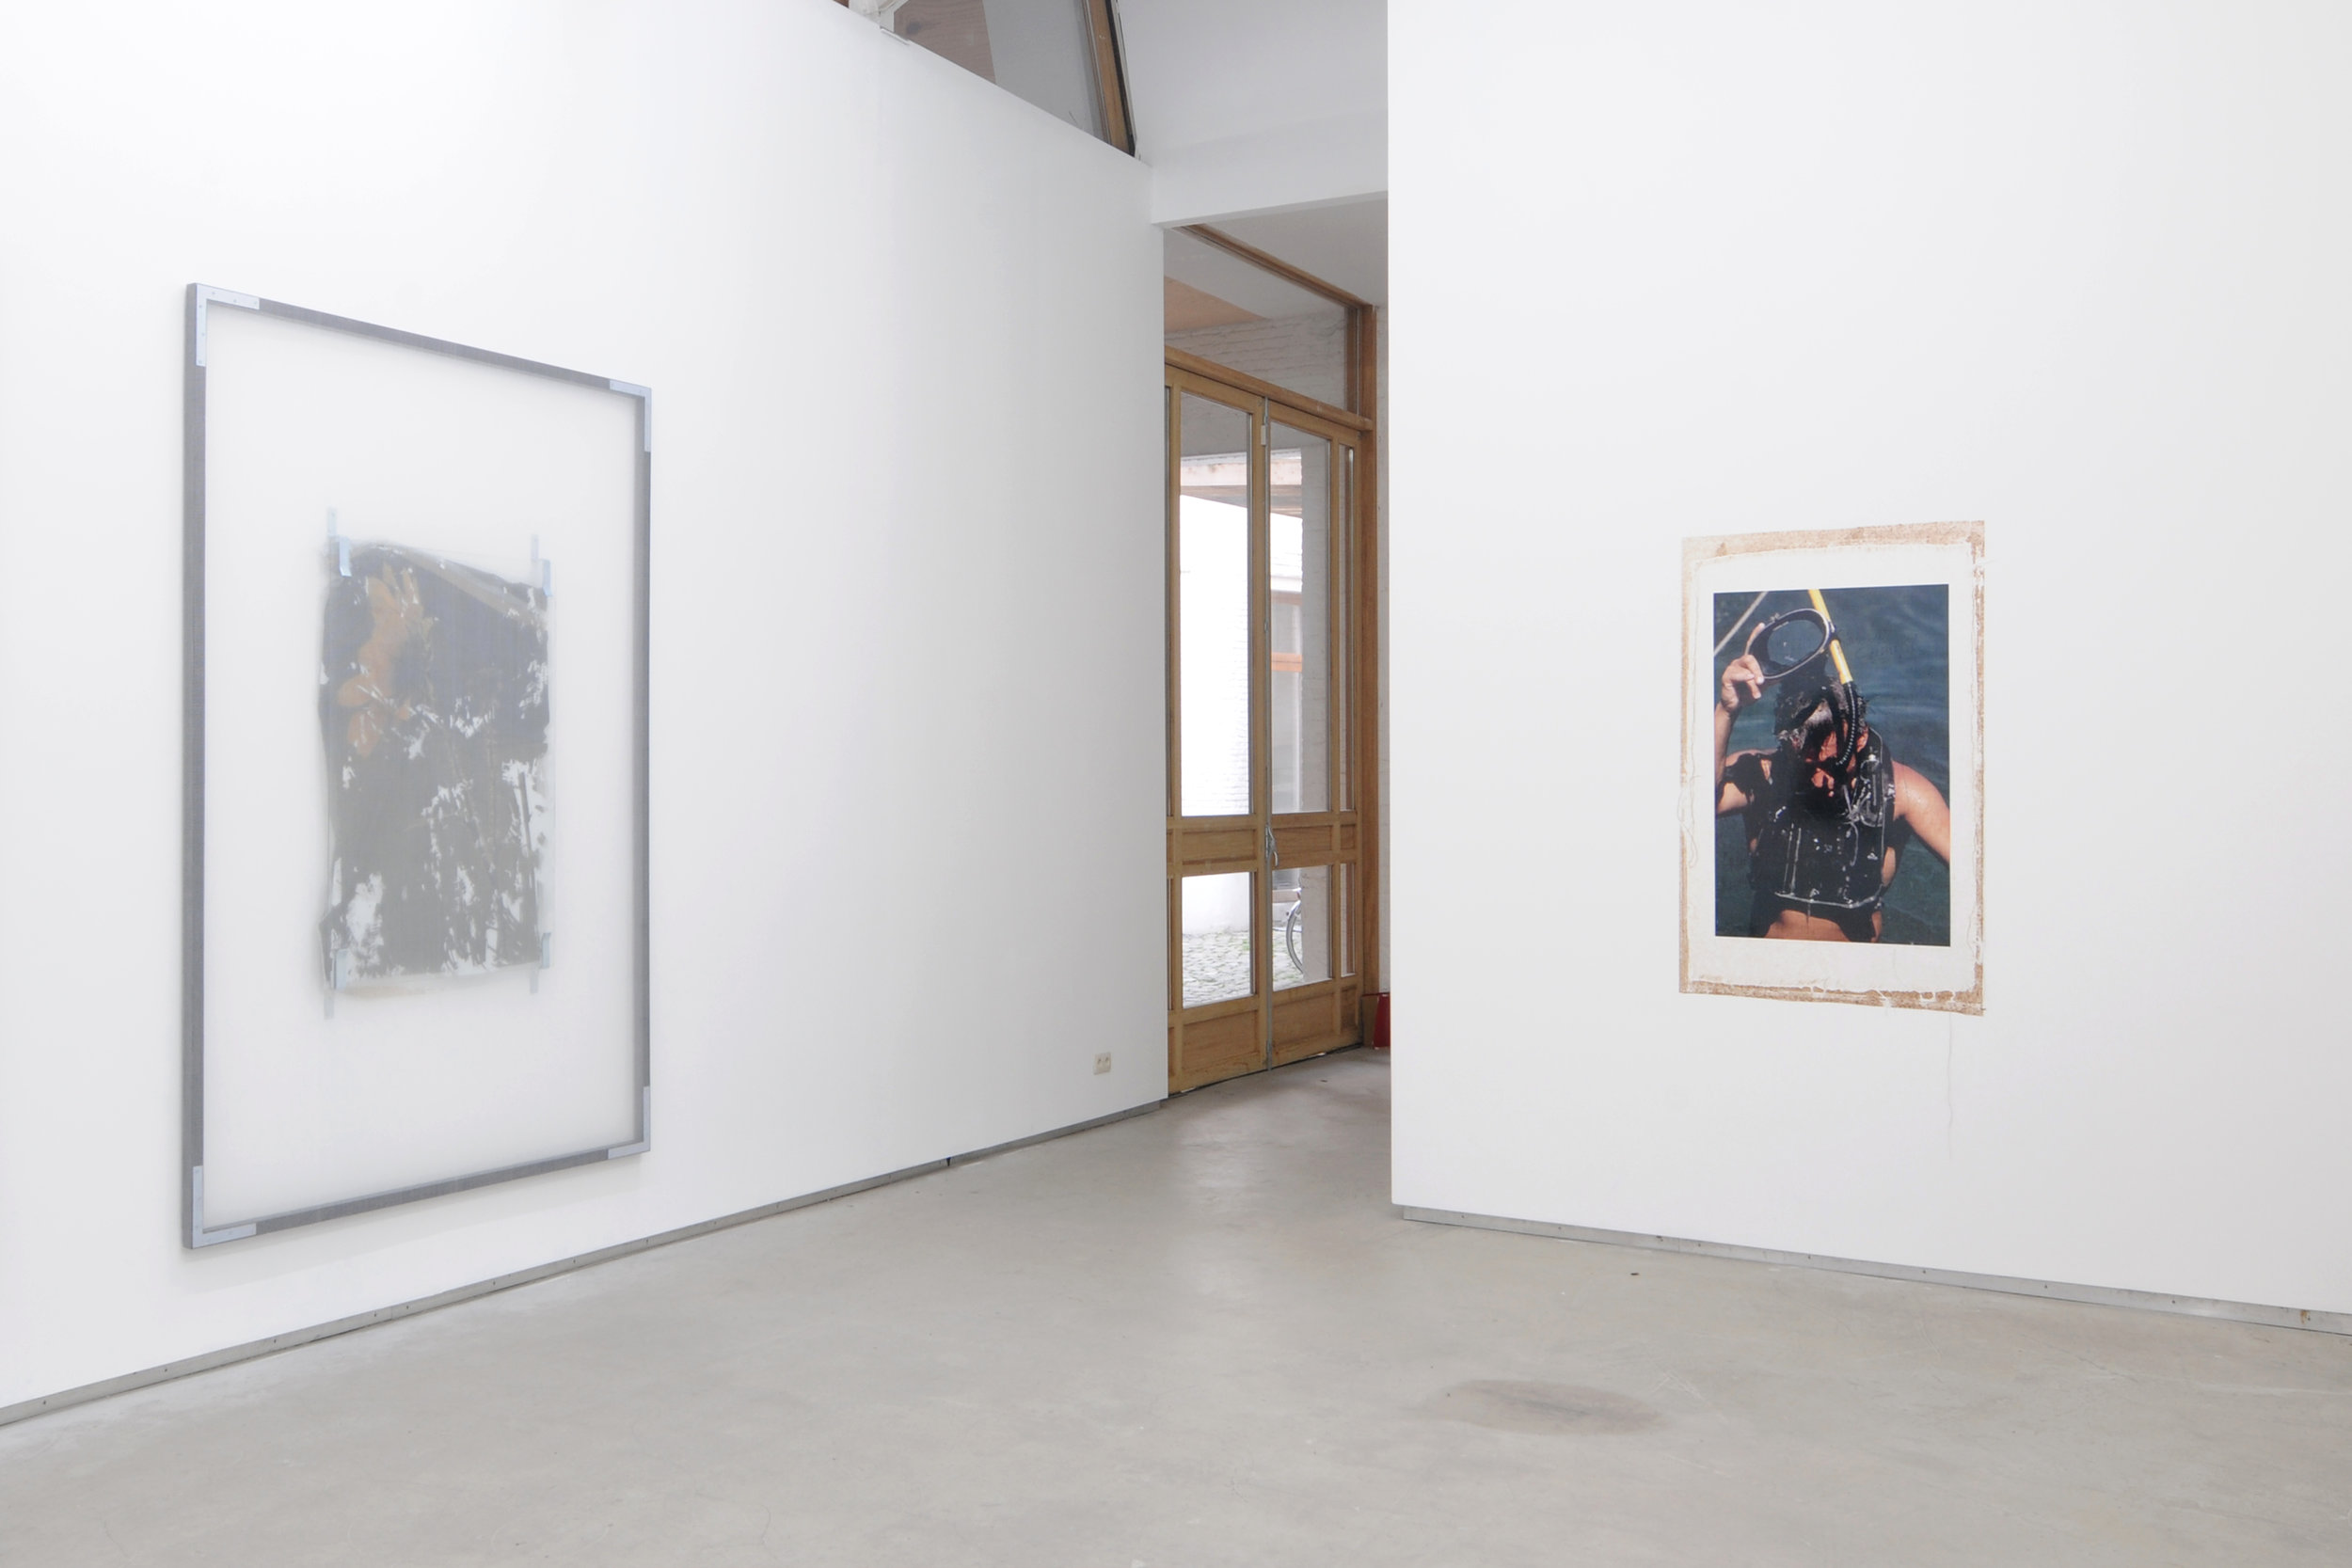 Valerie Snobeck,  Use Period , Catherine Bastide gallery, Brussels, 2013, exhibition view